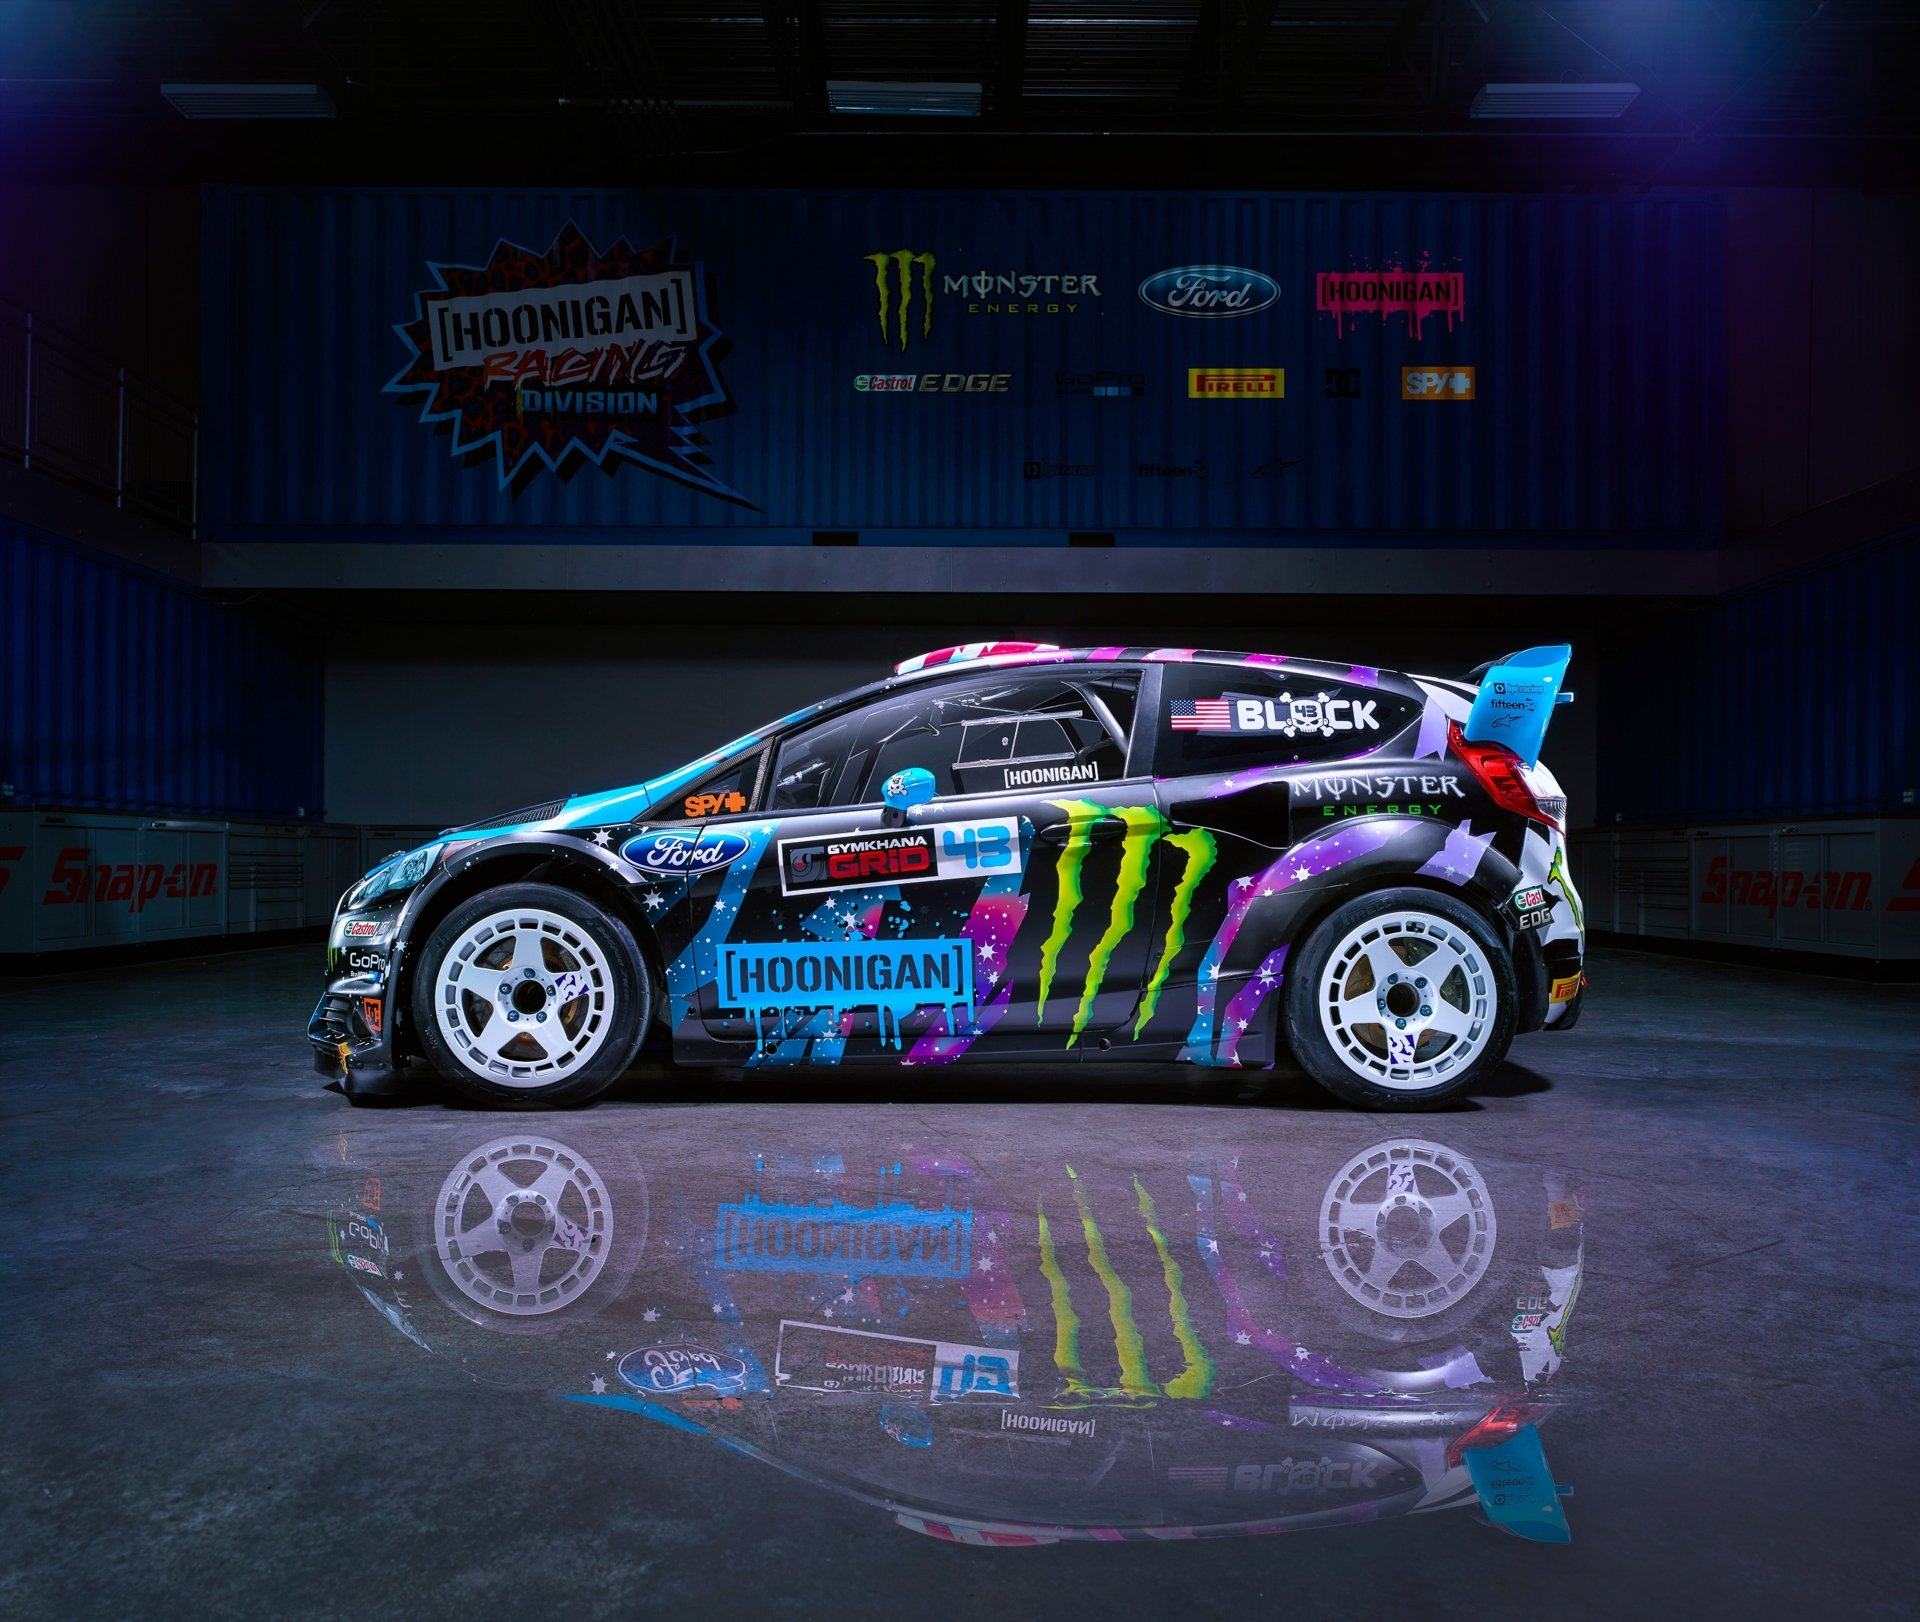 Ford Fiesta RX43 4k Ultra HD Wallpaper And Background